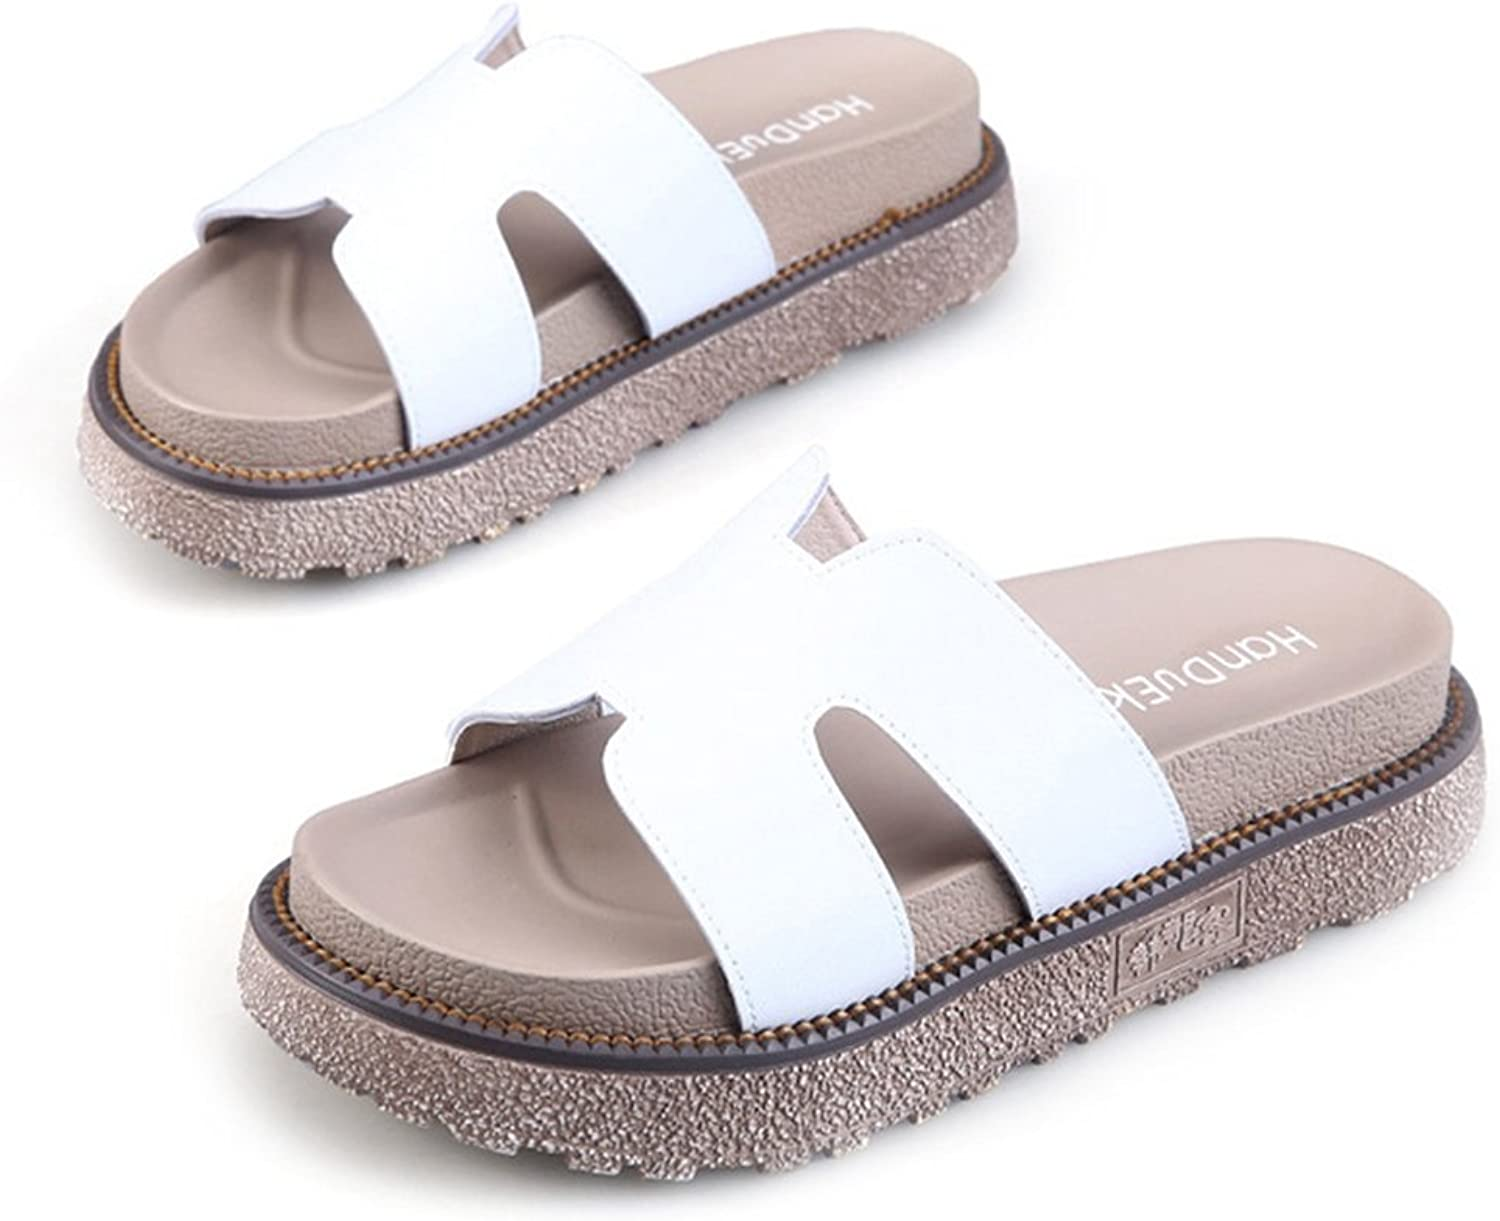 CYBLING Women's Platform Slide Sandals Slip on Flat Summer Beach Casual shoes with Notch Cut-Outs